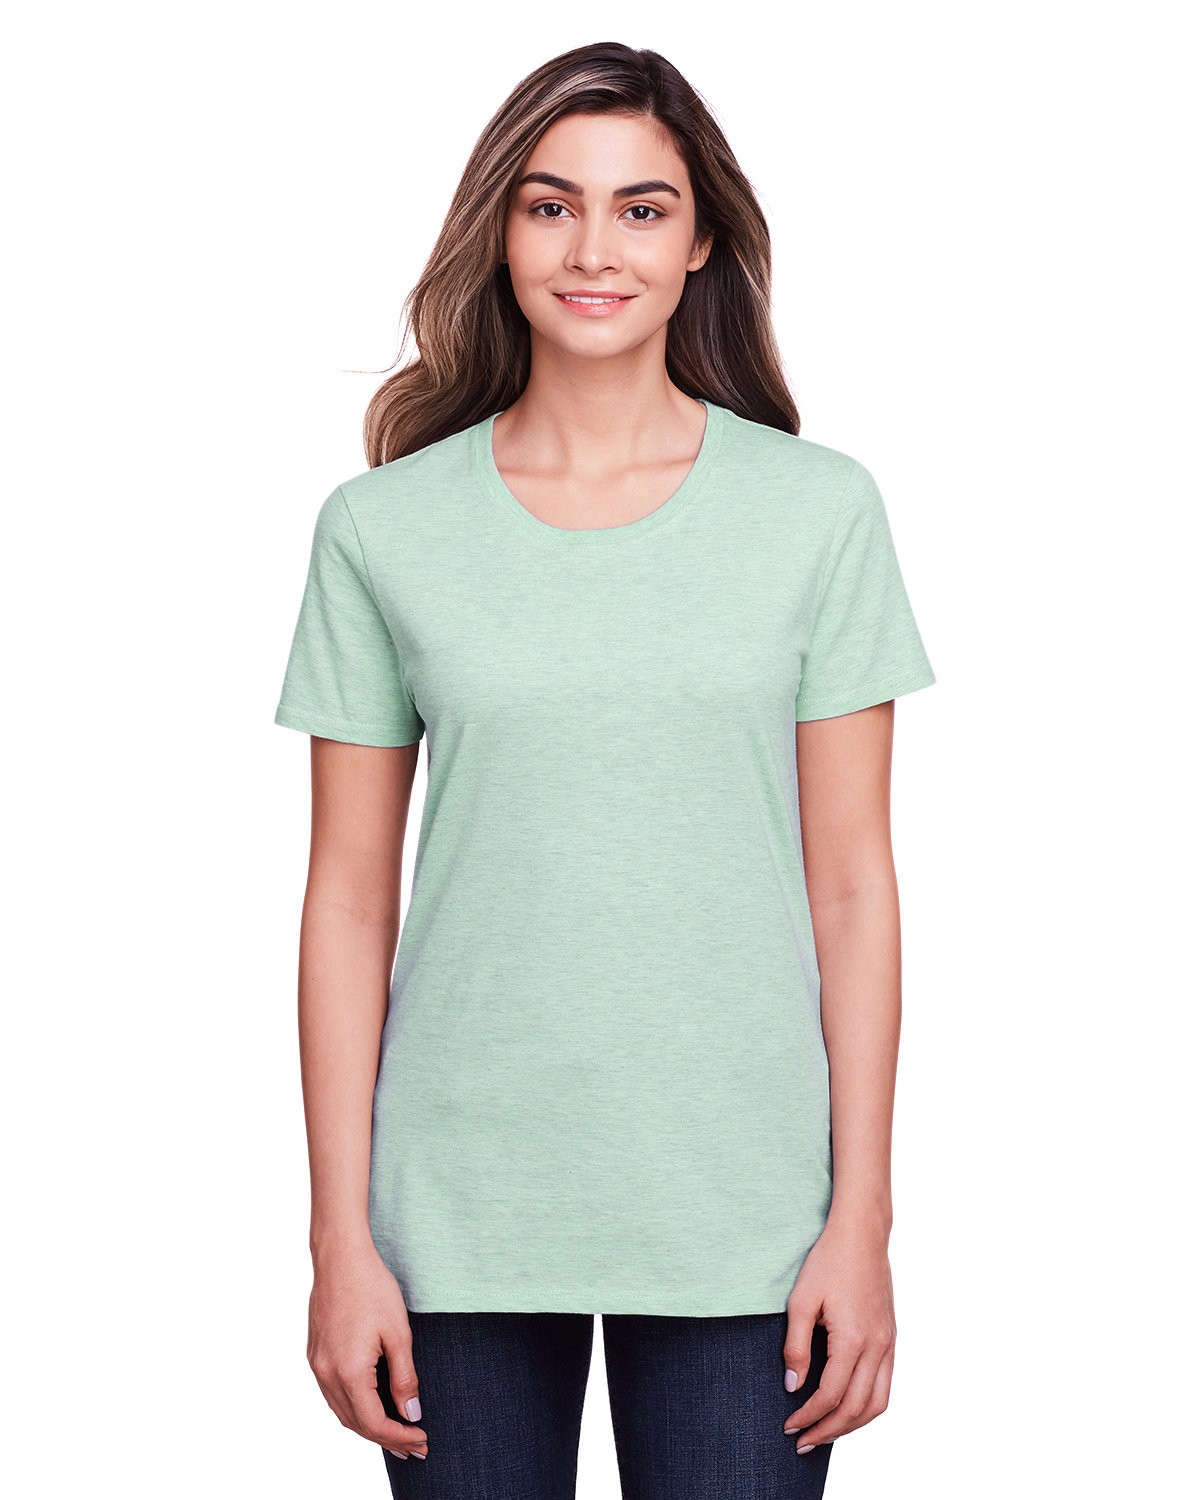 Fruit of the Loom Ladies' ICONIC™ T-Shirt MINT TO BE HTHR